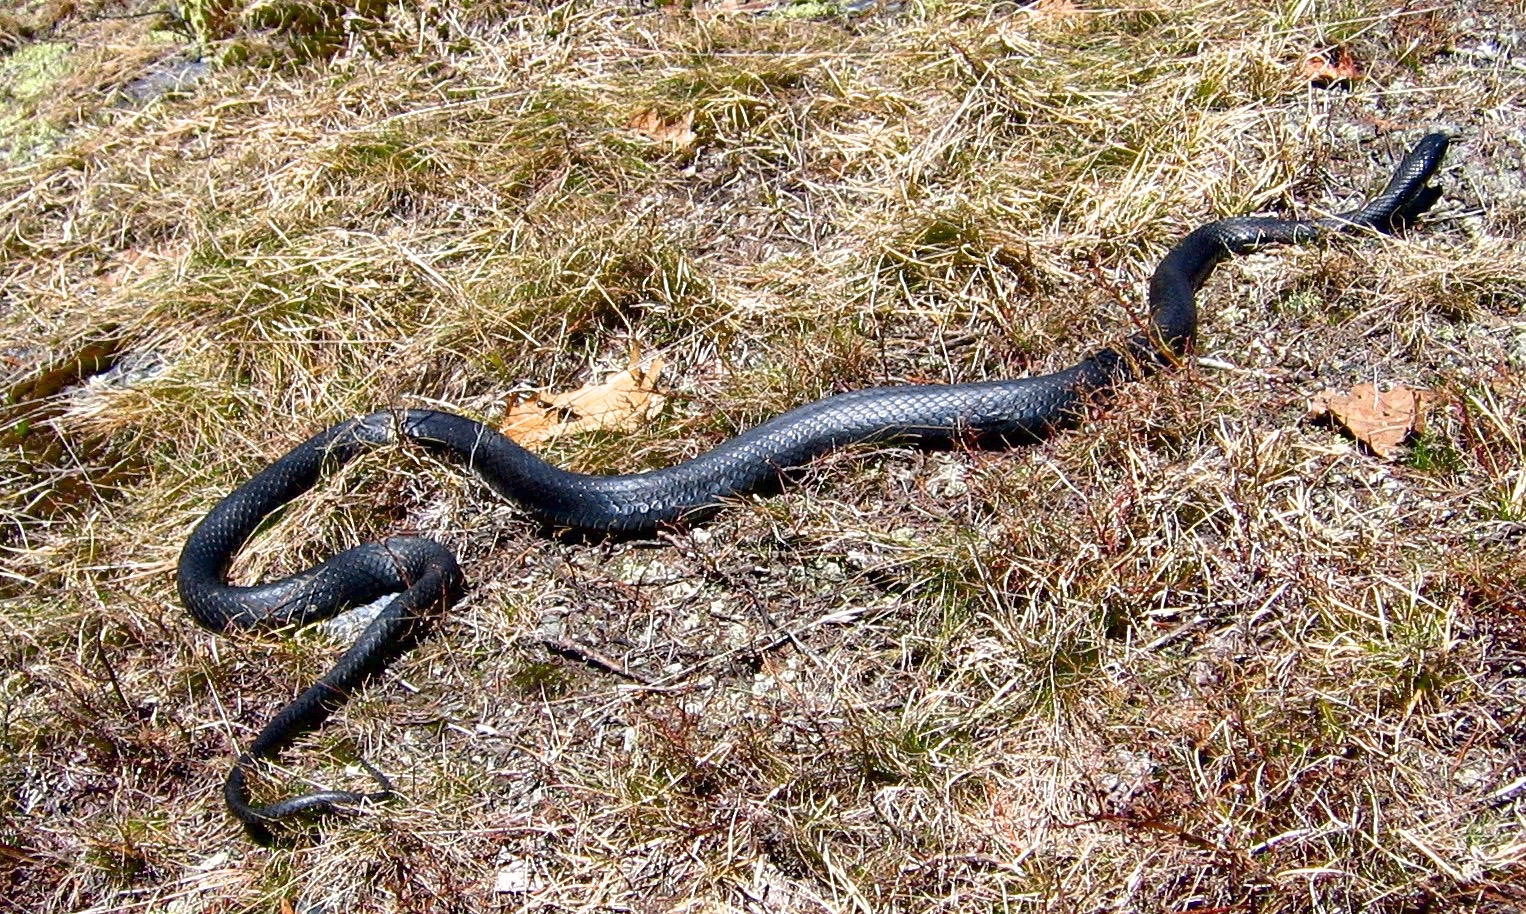 Coluber Constrictor North American Racer